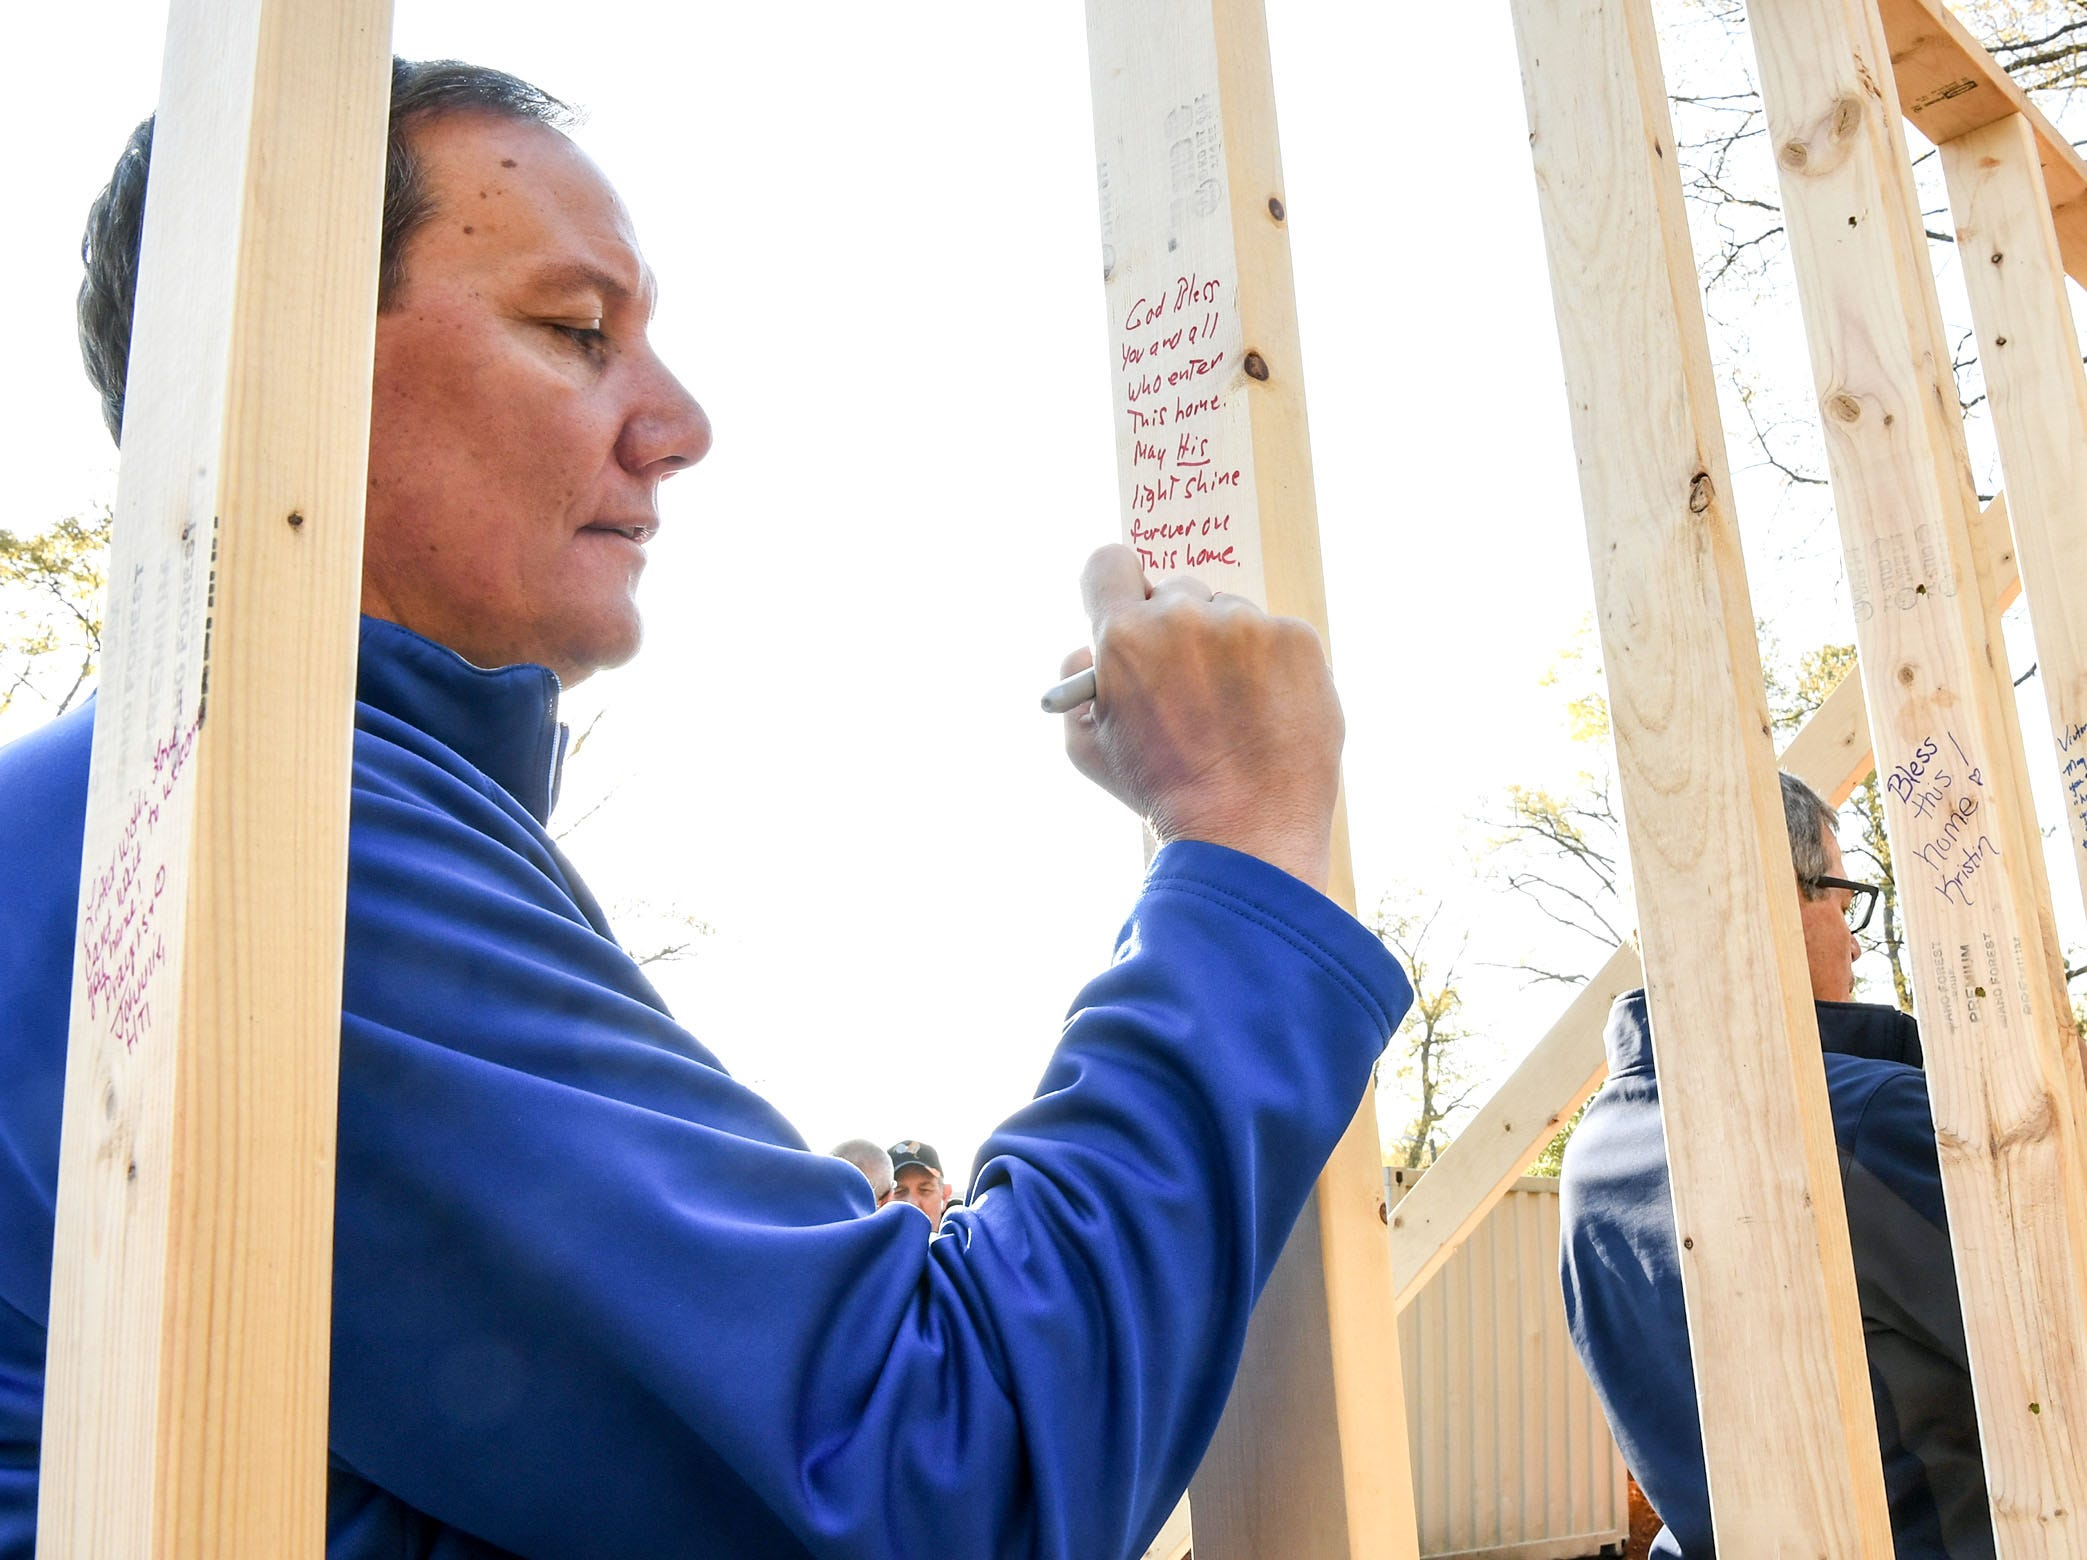 Randy Bunch of Bosch writes a well-wishing notes on a wood wall after helping raise it at the Habitat for Humanity of Anderson County home build for new homeowner recipient Victoria Santos in Anderson Thursday.